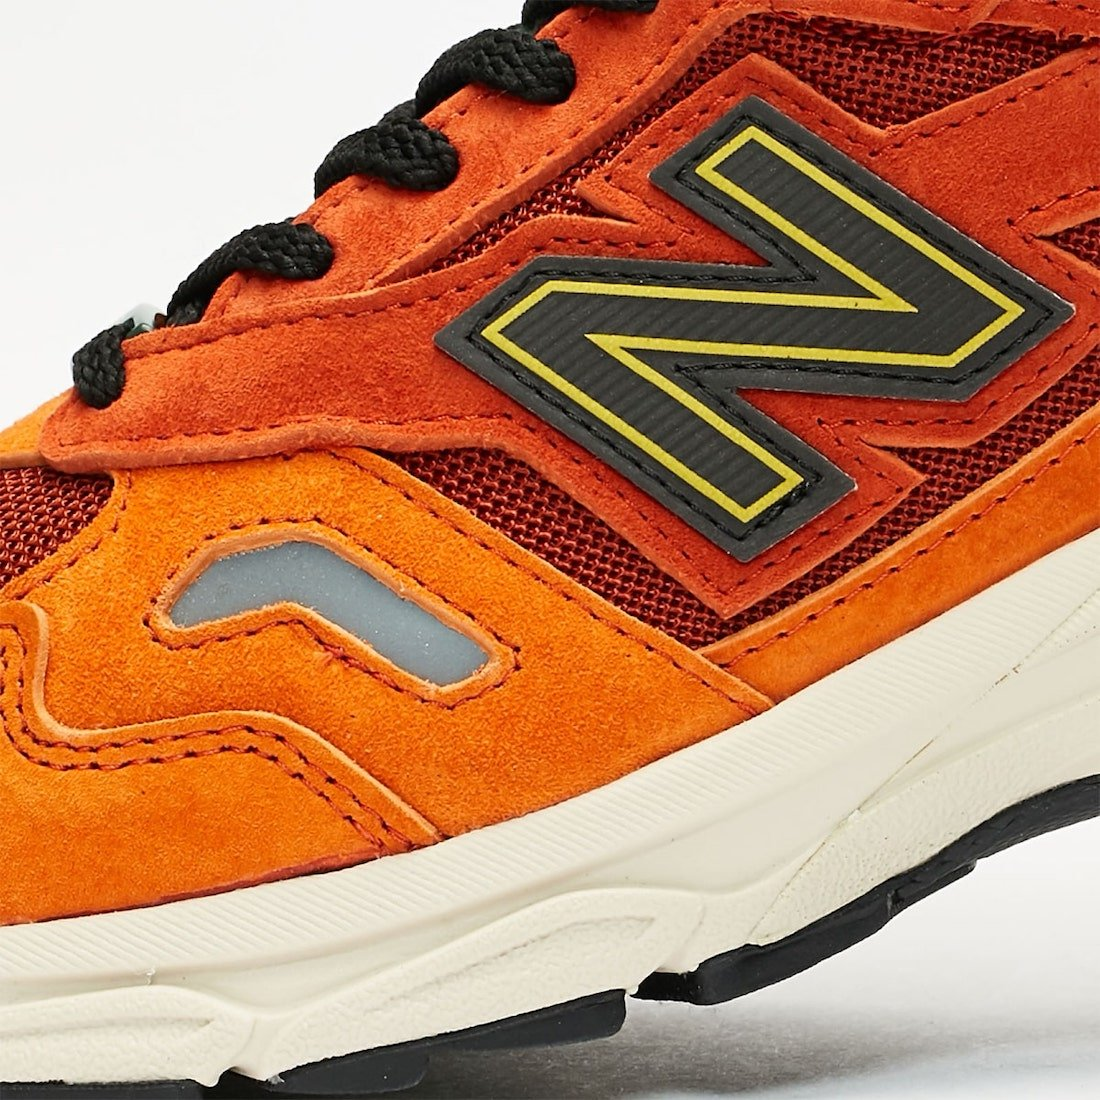 SNS x New Balance 920 Release Date